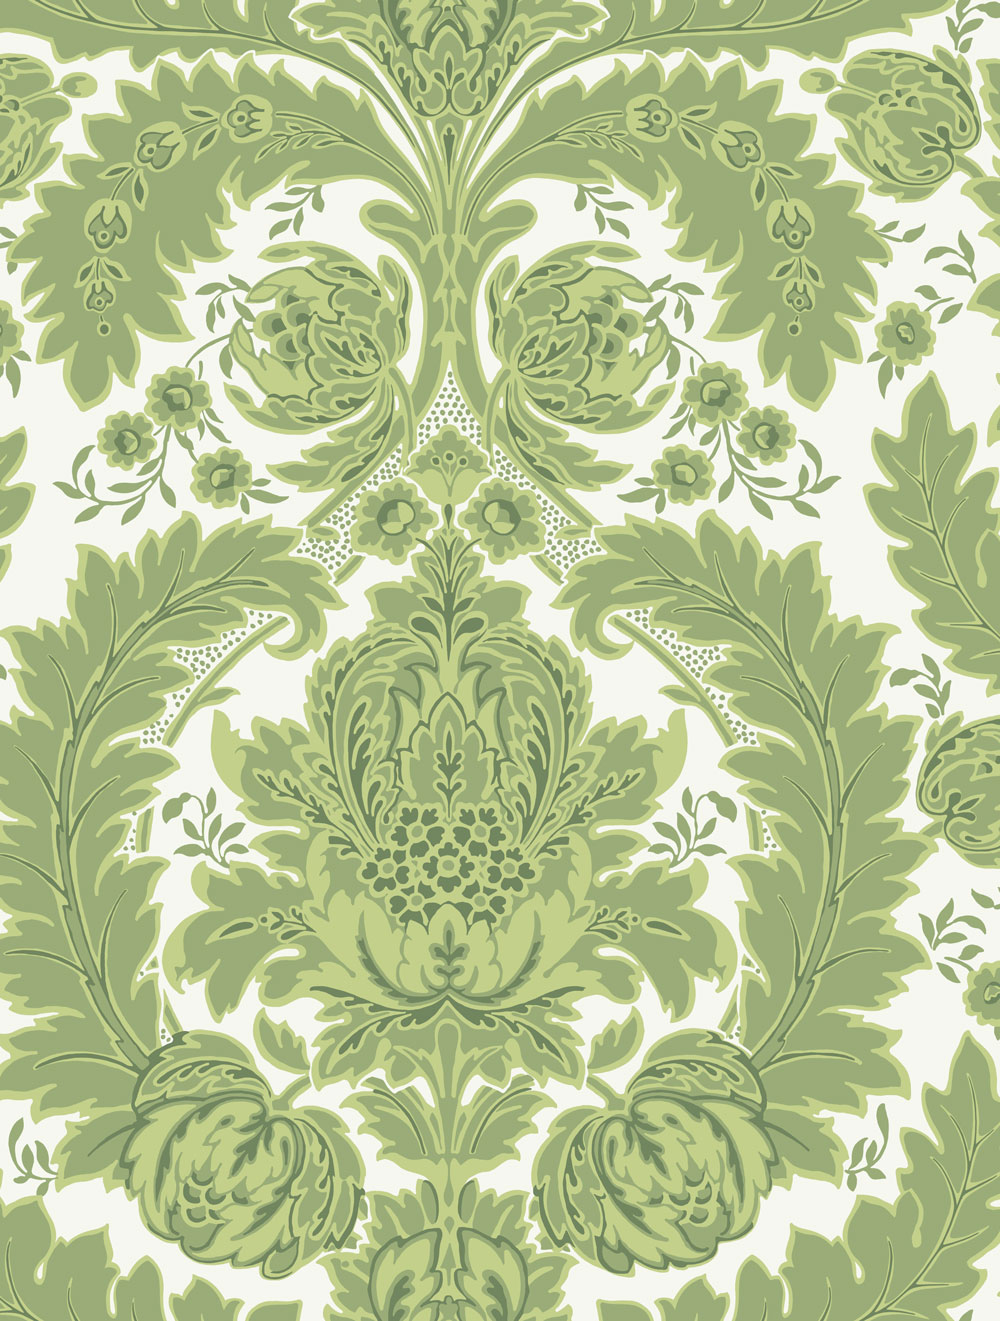 A-graceful-pattern-arrangement-of-leaves-and-budding-flowers-makes-up-this-very-handsome-damask-wall-wallpaper-wp423355